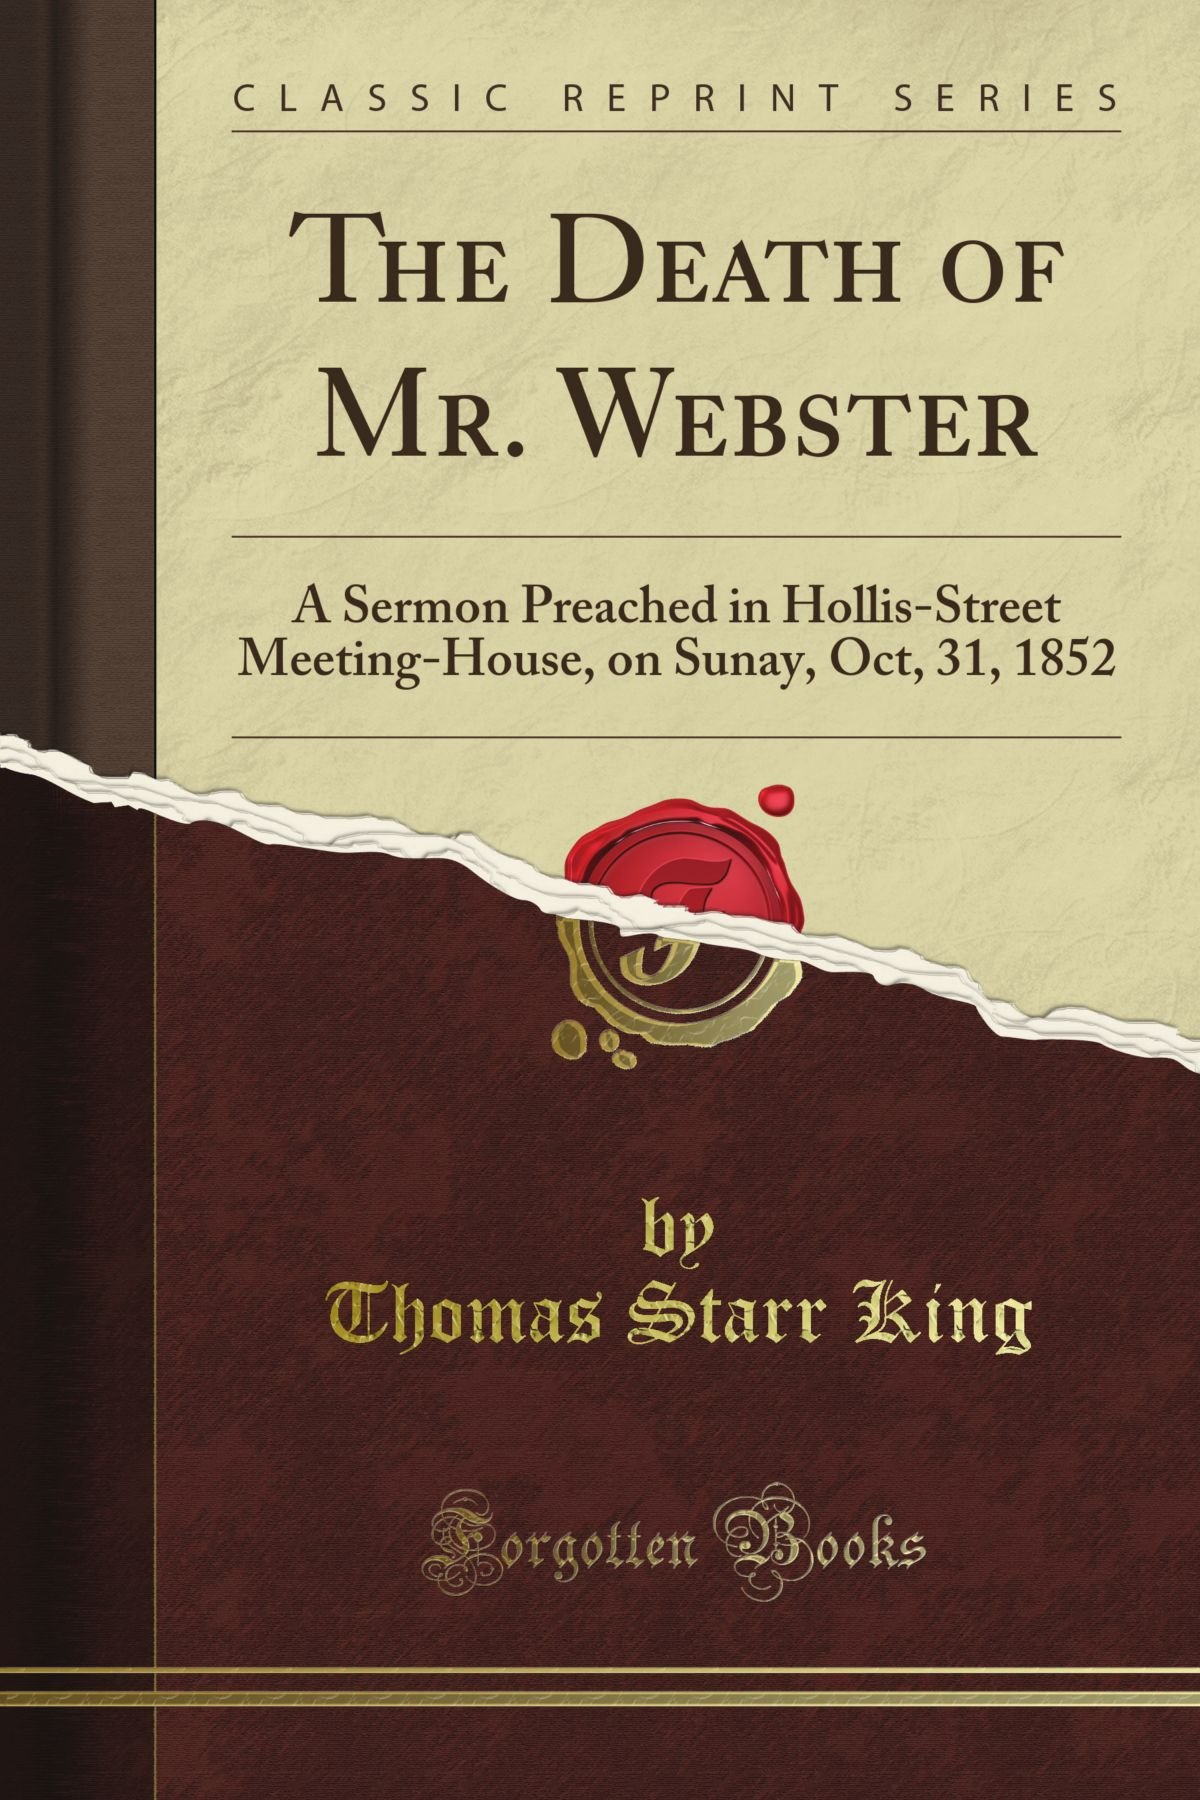 The Death of Mr. Webster: A Sermon Preached in Hollis-Street Meeting-House, on Sunay, Oct, 31, 1852 (Classic Reprint) pdf